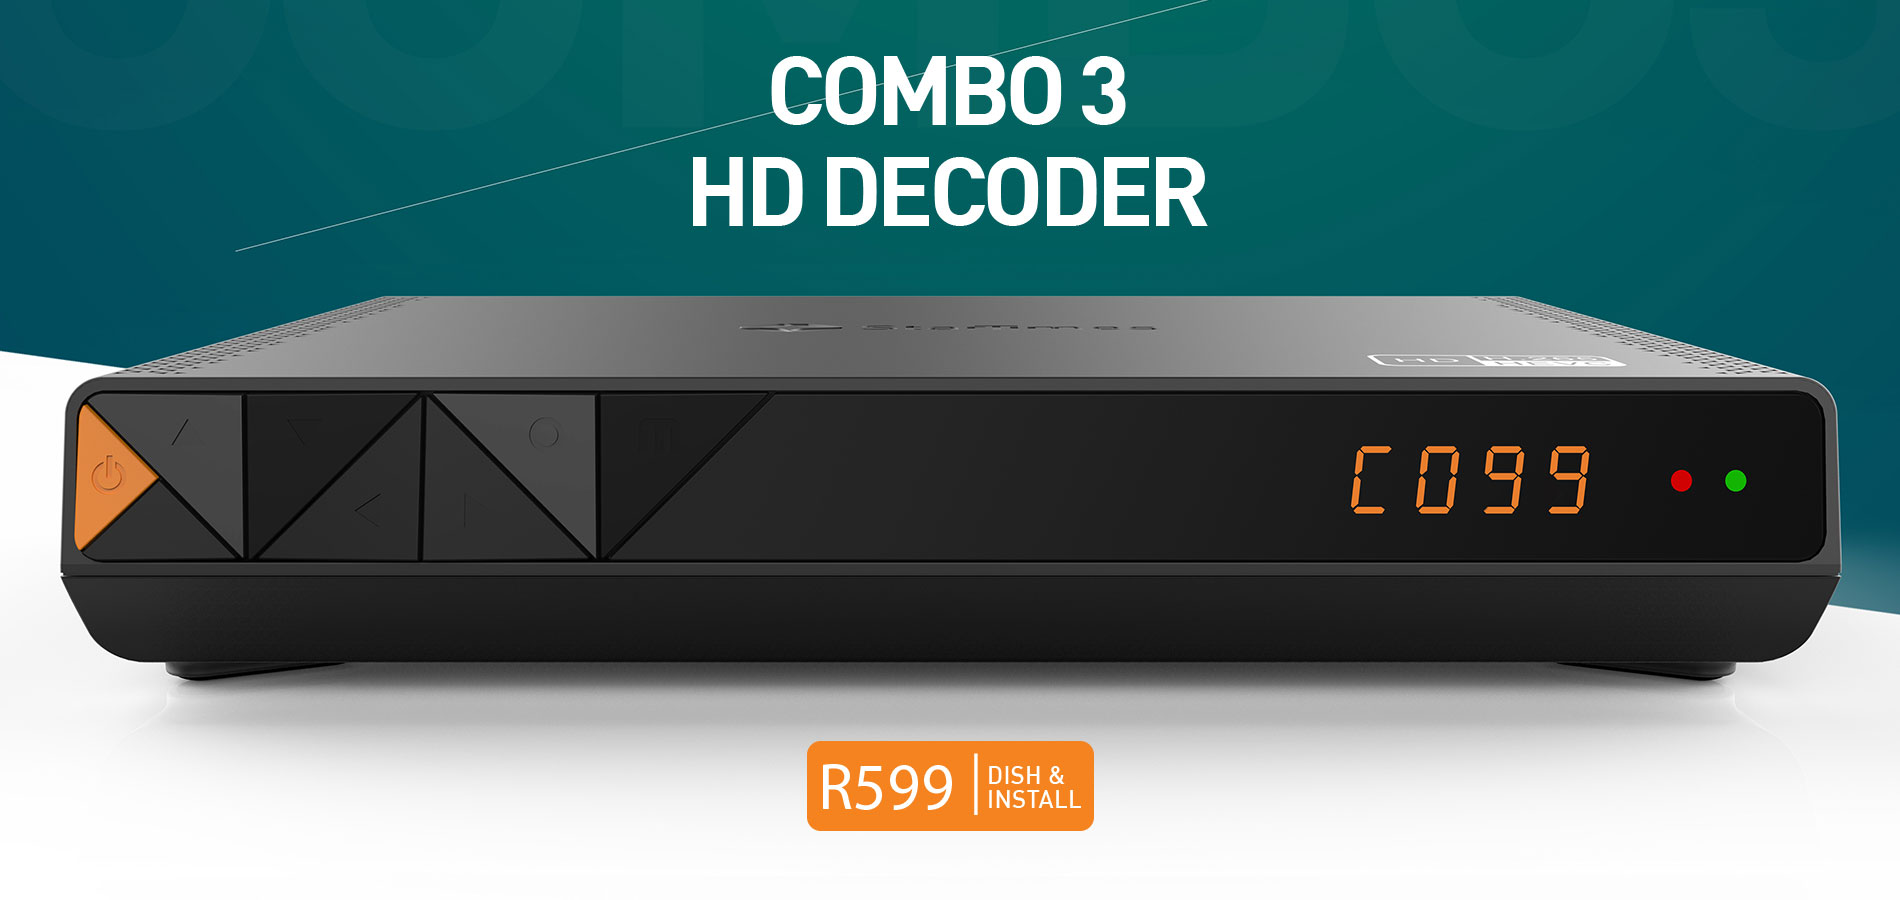 Combo 3 Decoder for R599 plus installation